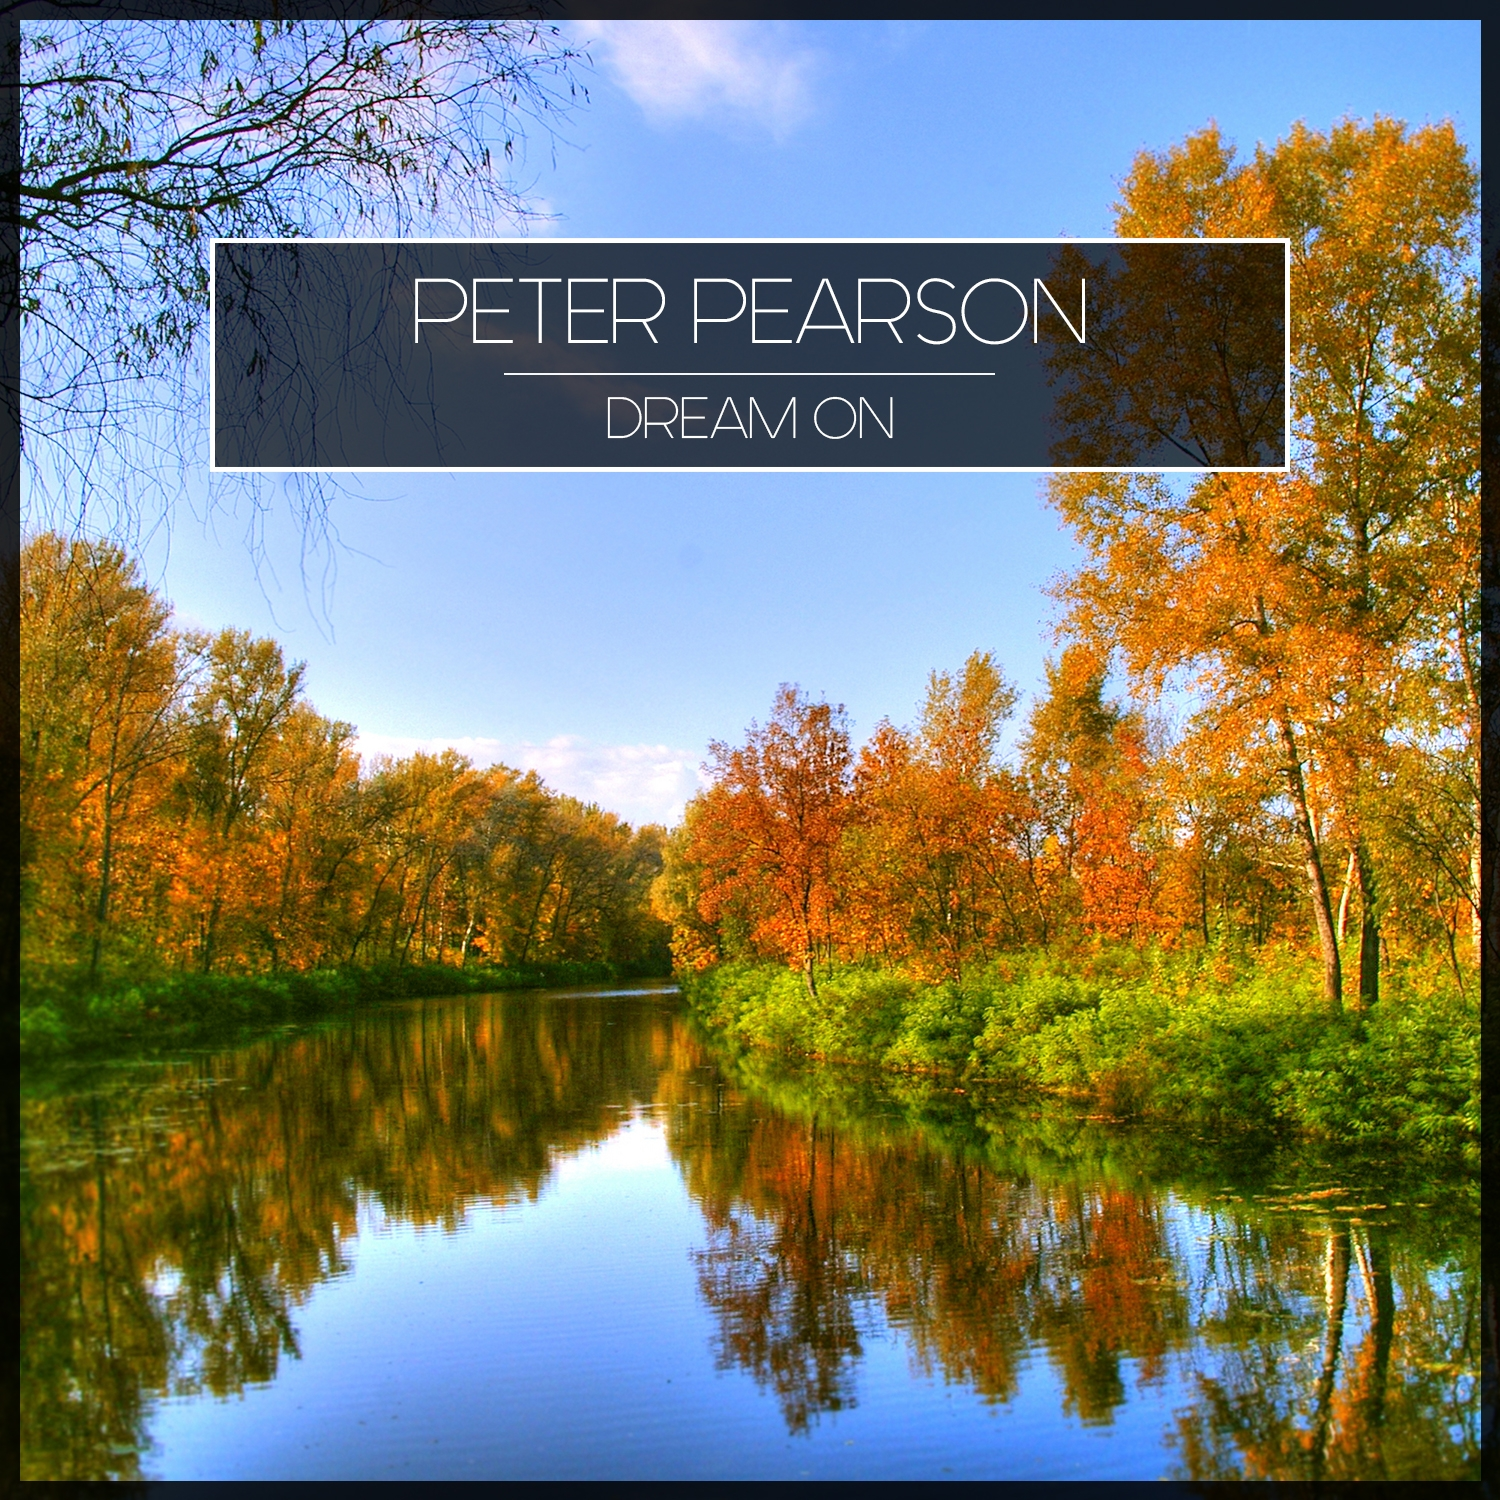 Peter Pearson - Lost In Summer (Original Mix)